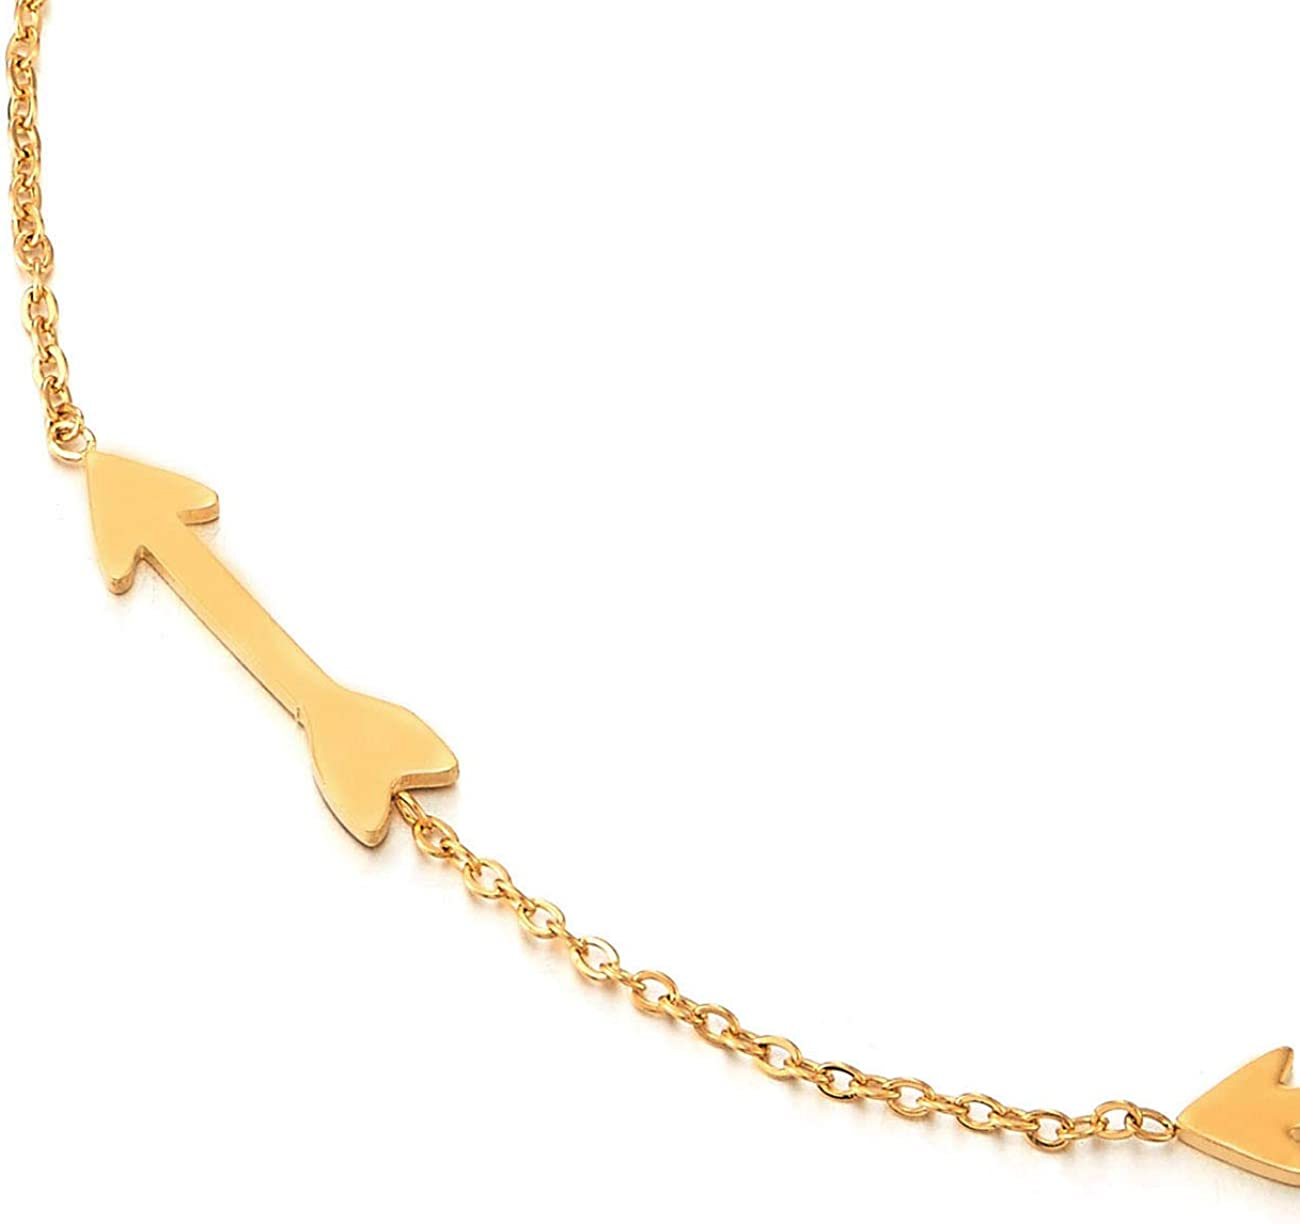 COOLSTEELANDBEYOND Stylish Stainless Steel Gold Color Arrow Charms Link Chain Anklet Bracelet Adjustable